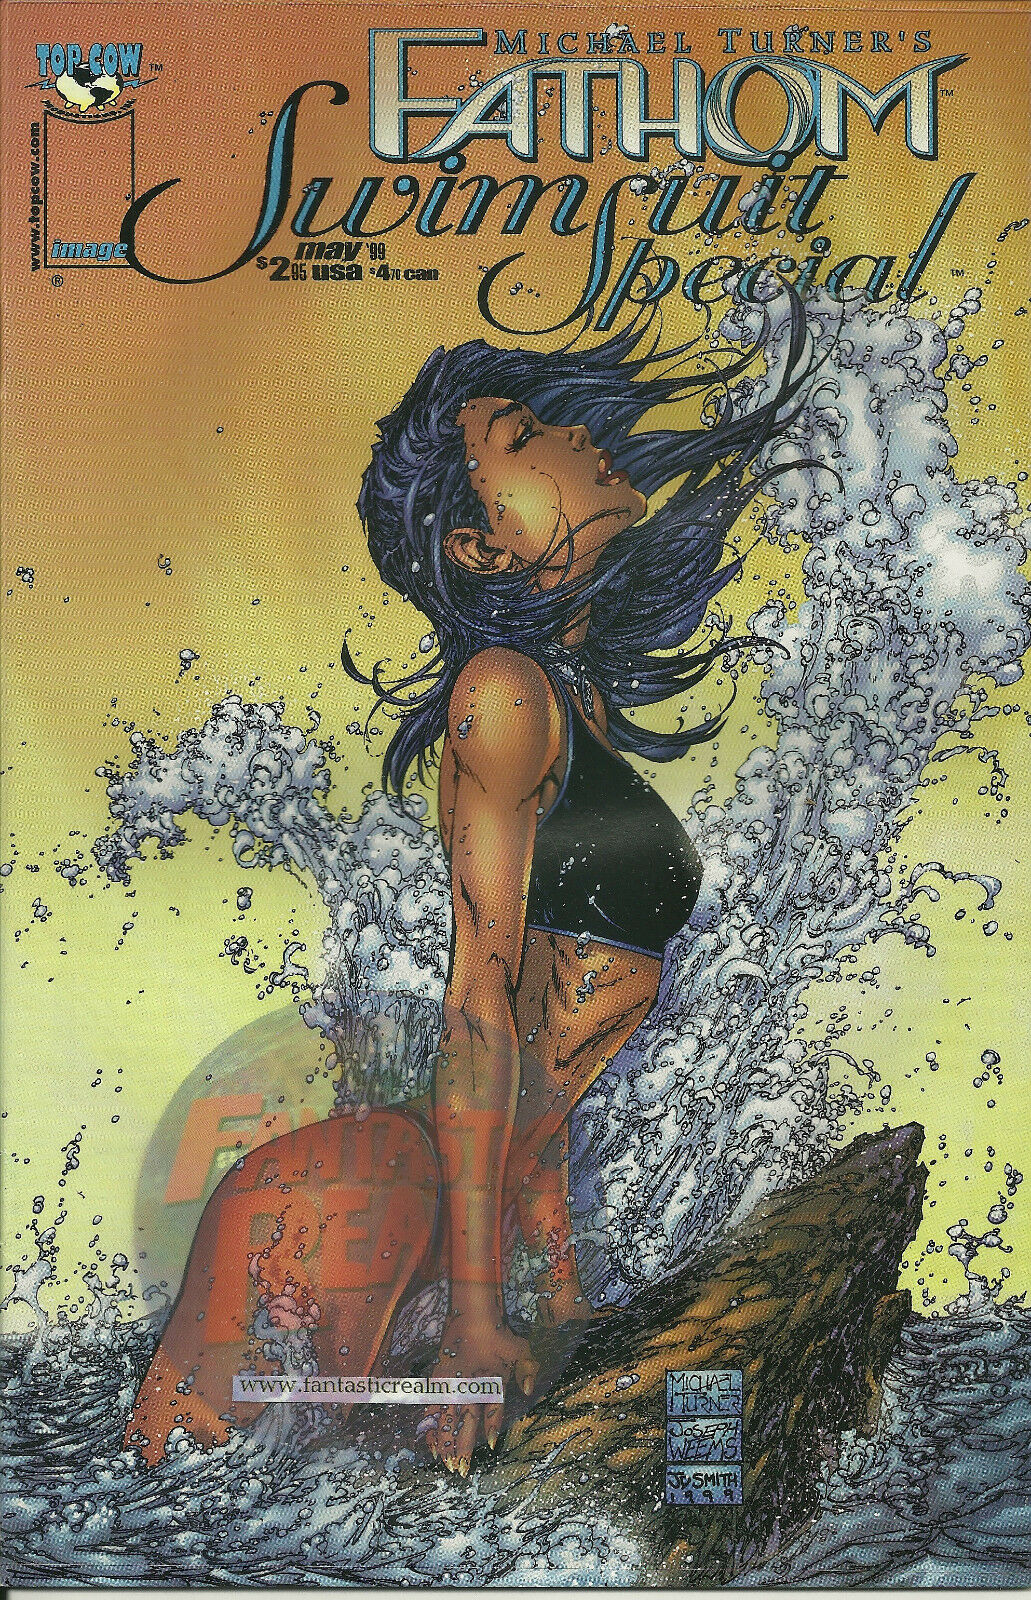 MICHAEL TURNER'S FATHOM SWIMSUIT SPECIAL (1999) IMAGE COMICS